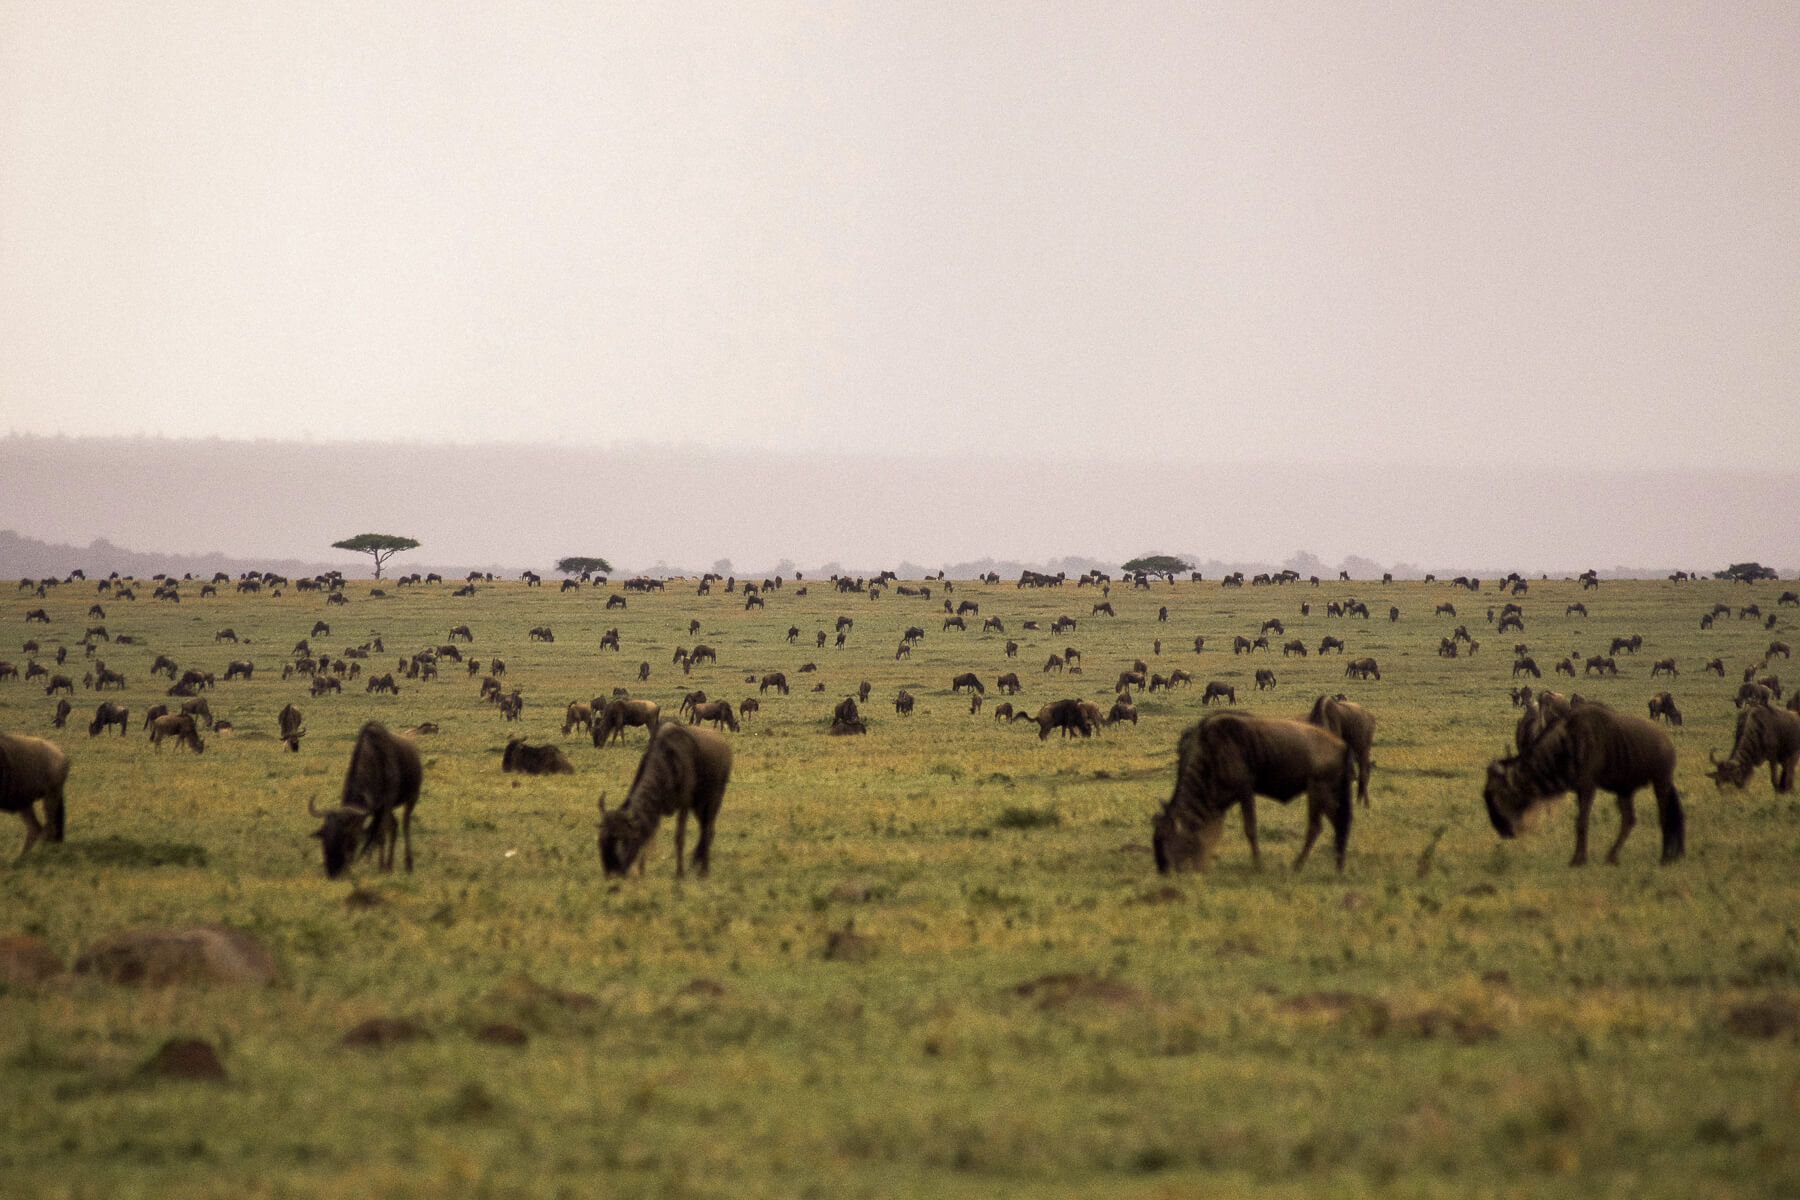 Thousands of Wildebeest during the Great Migration